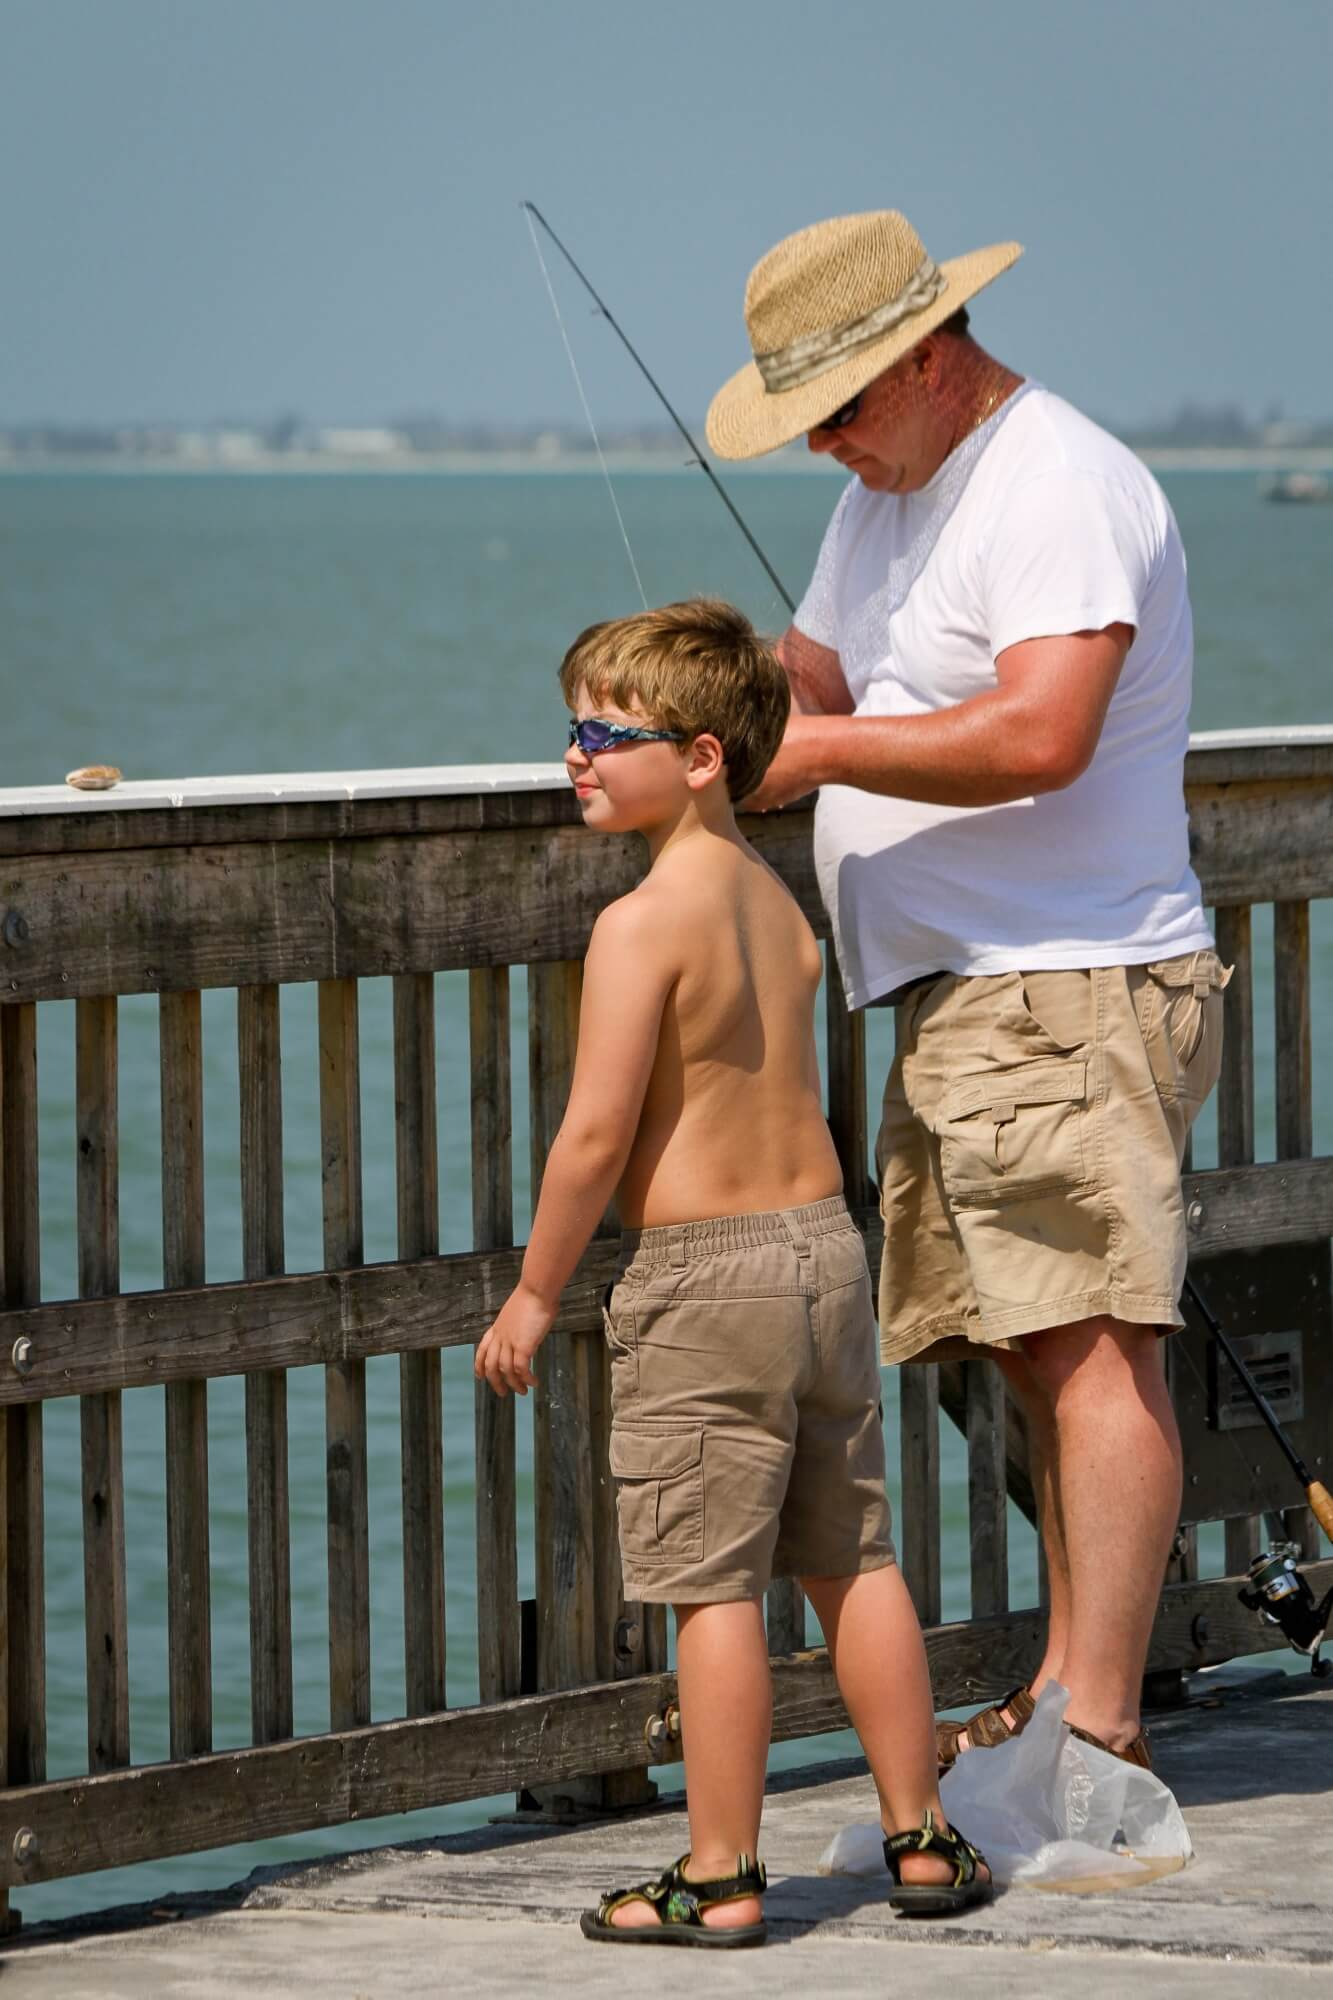 Young boy fishes from the pier with dad Southwest Florida.